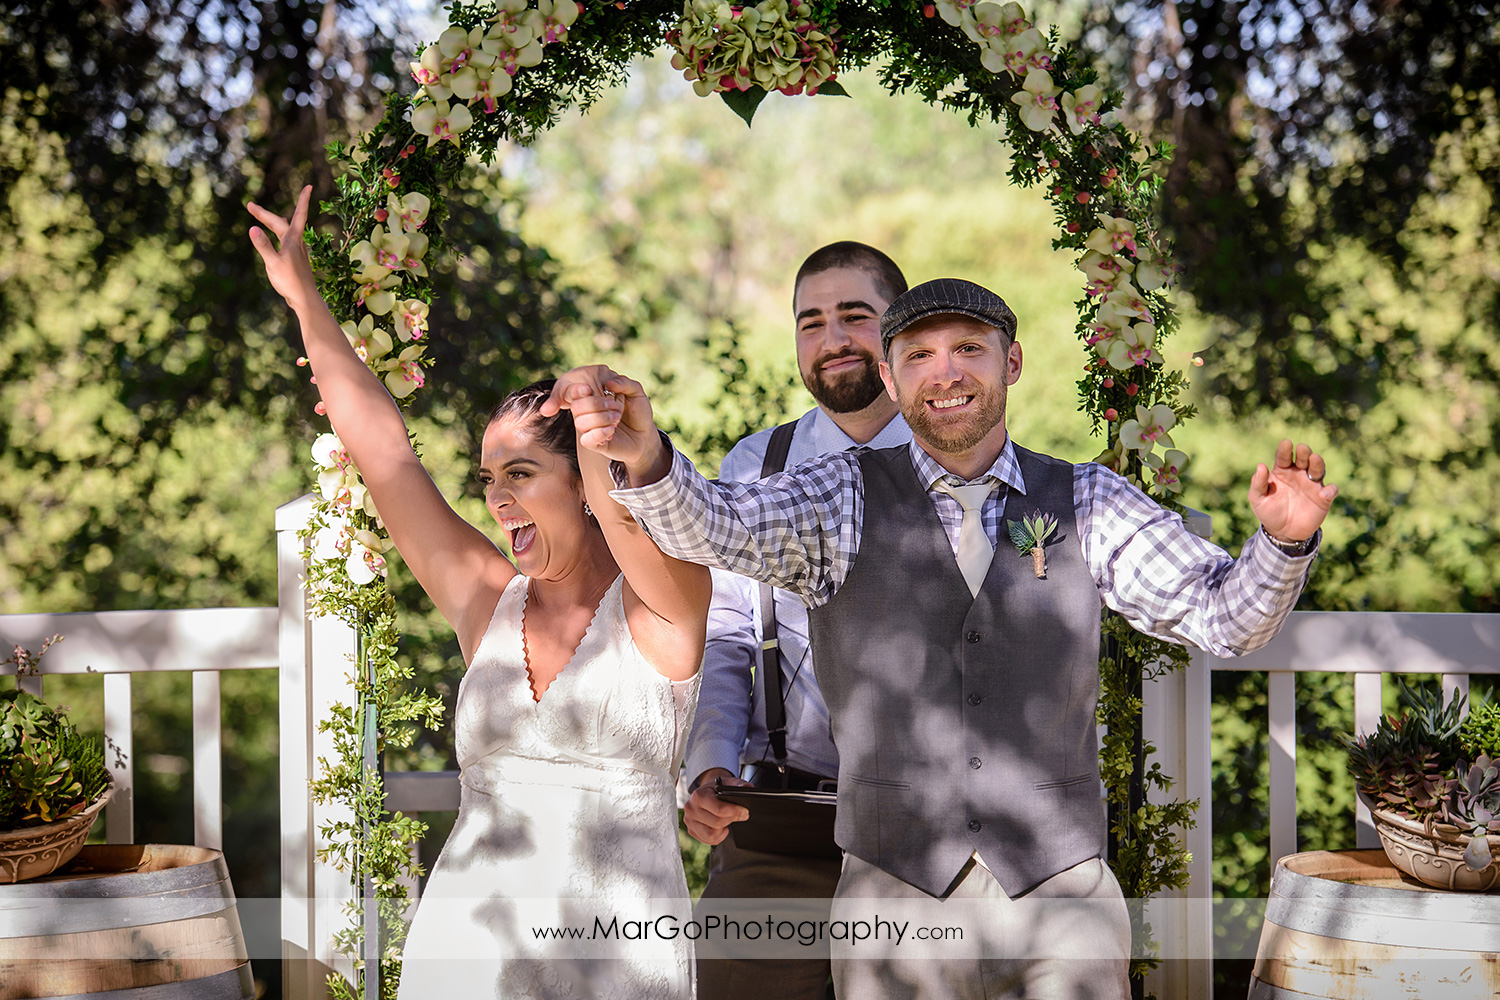 bride and groom after wedding ceremony at Picchetti Winery in Cupertino